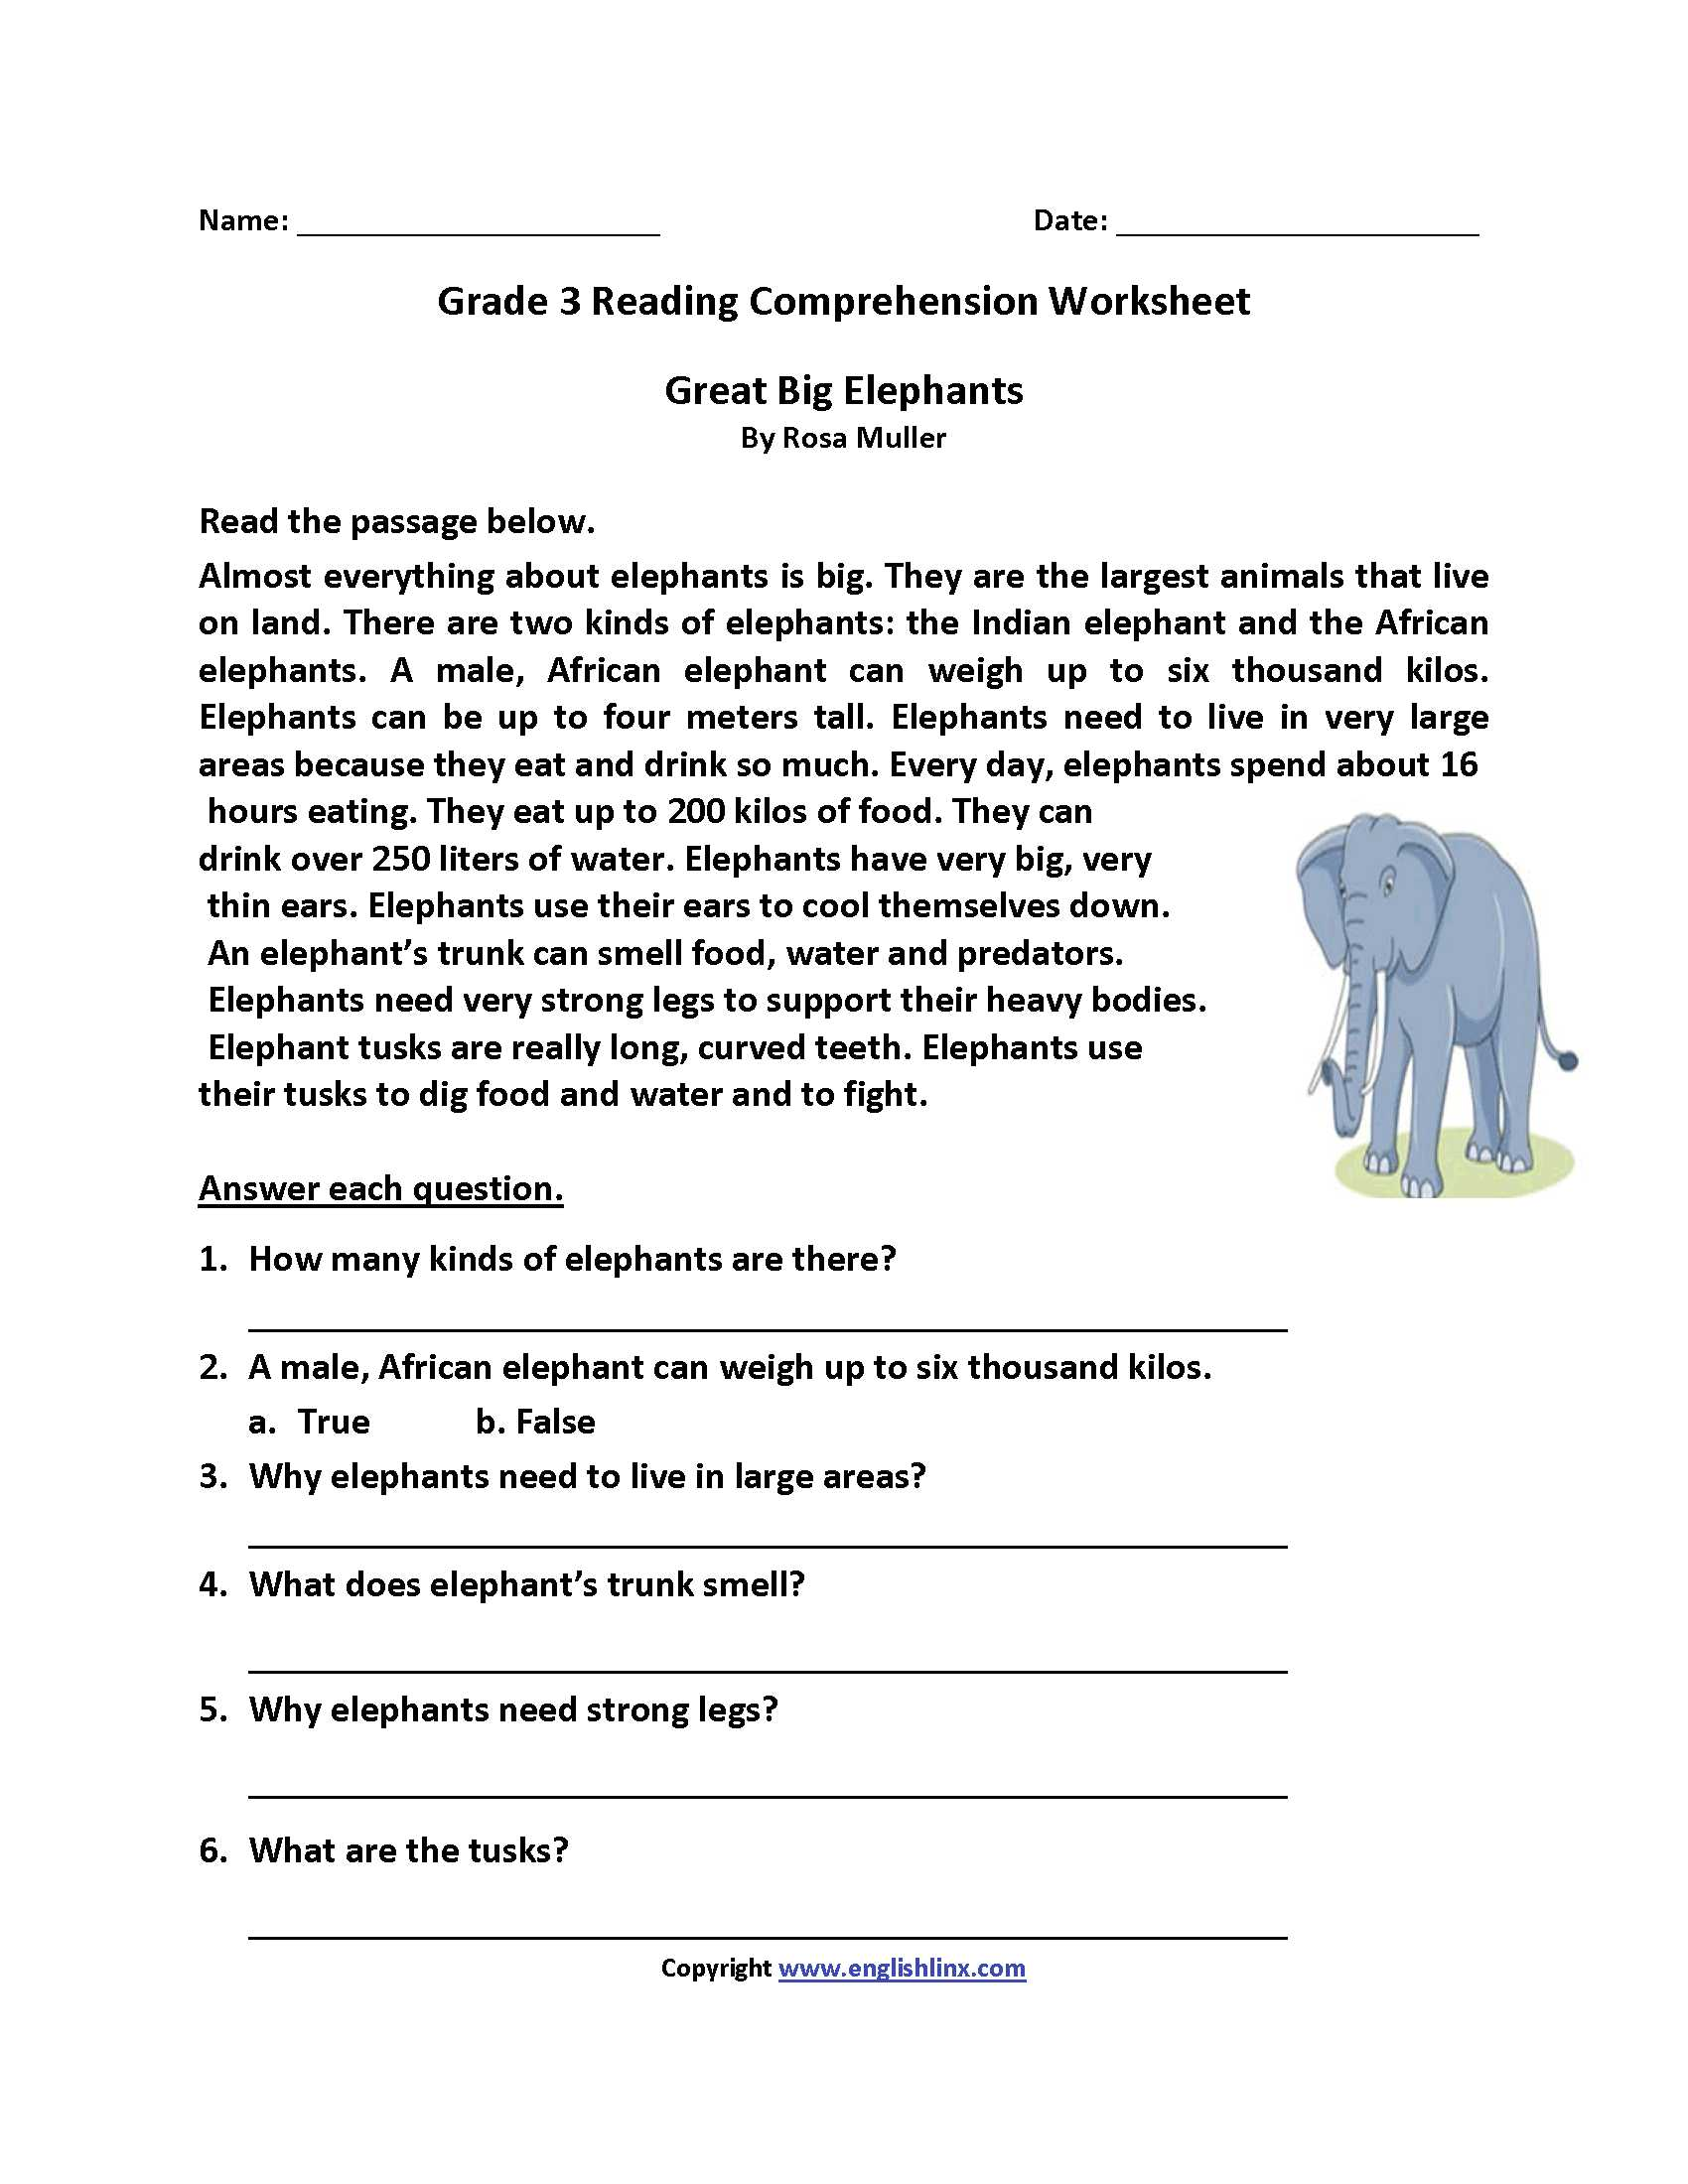 Comprehension Worksheets for Grade 2 and Math Free Reading Worksheets for 3rd Grade Mon Core Activities